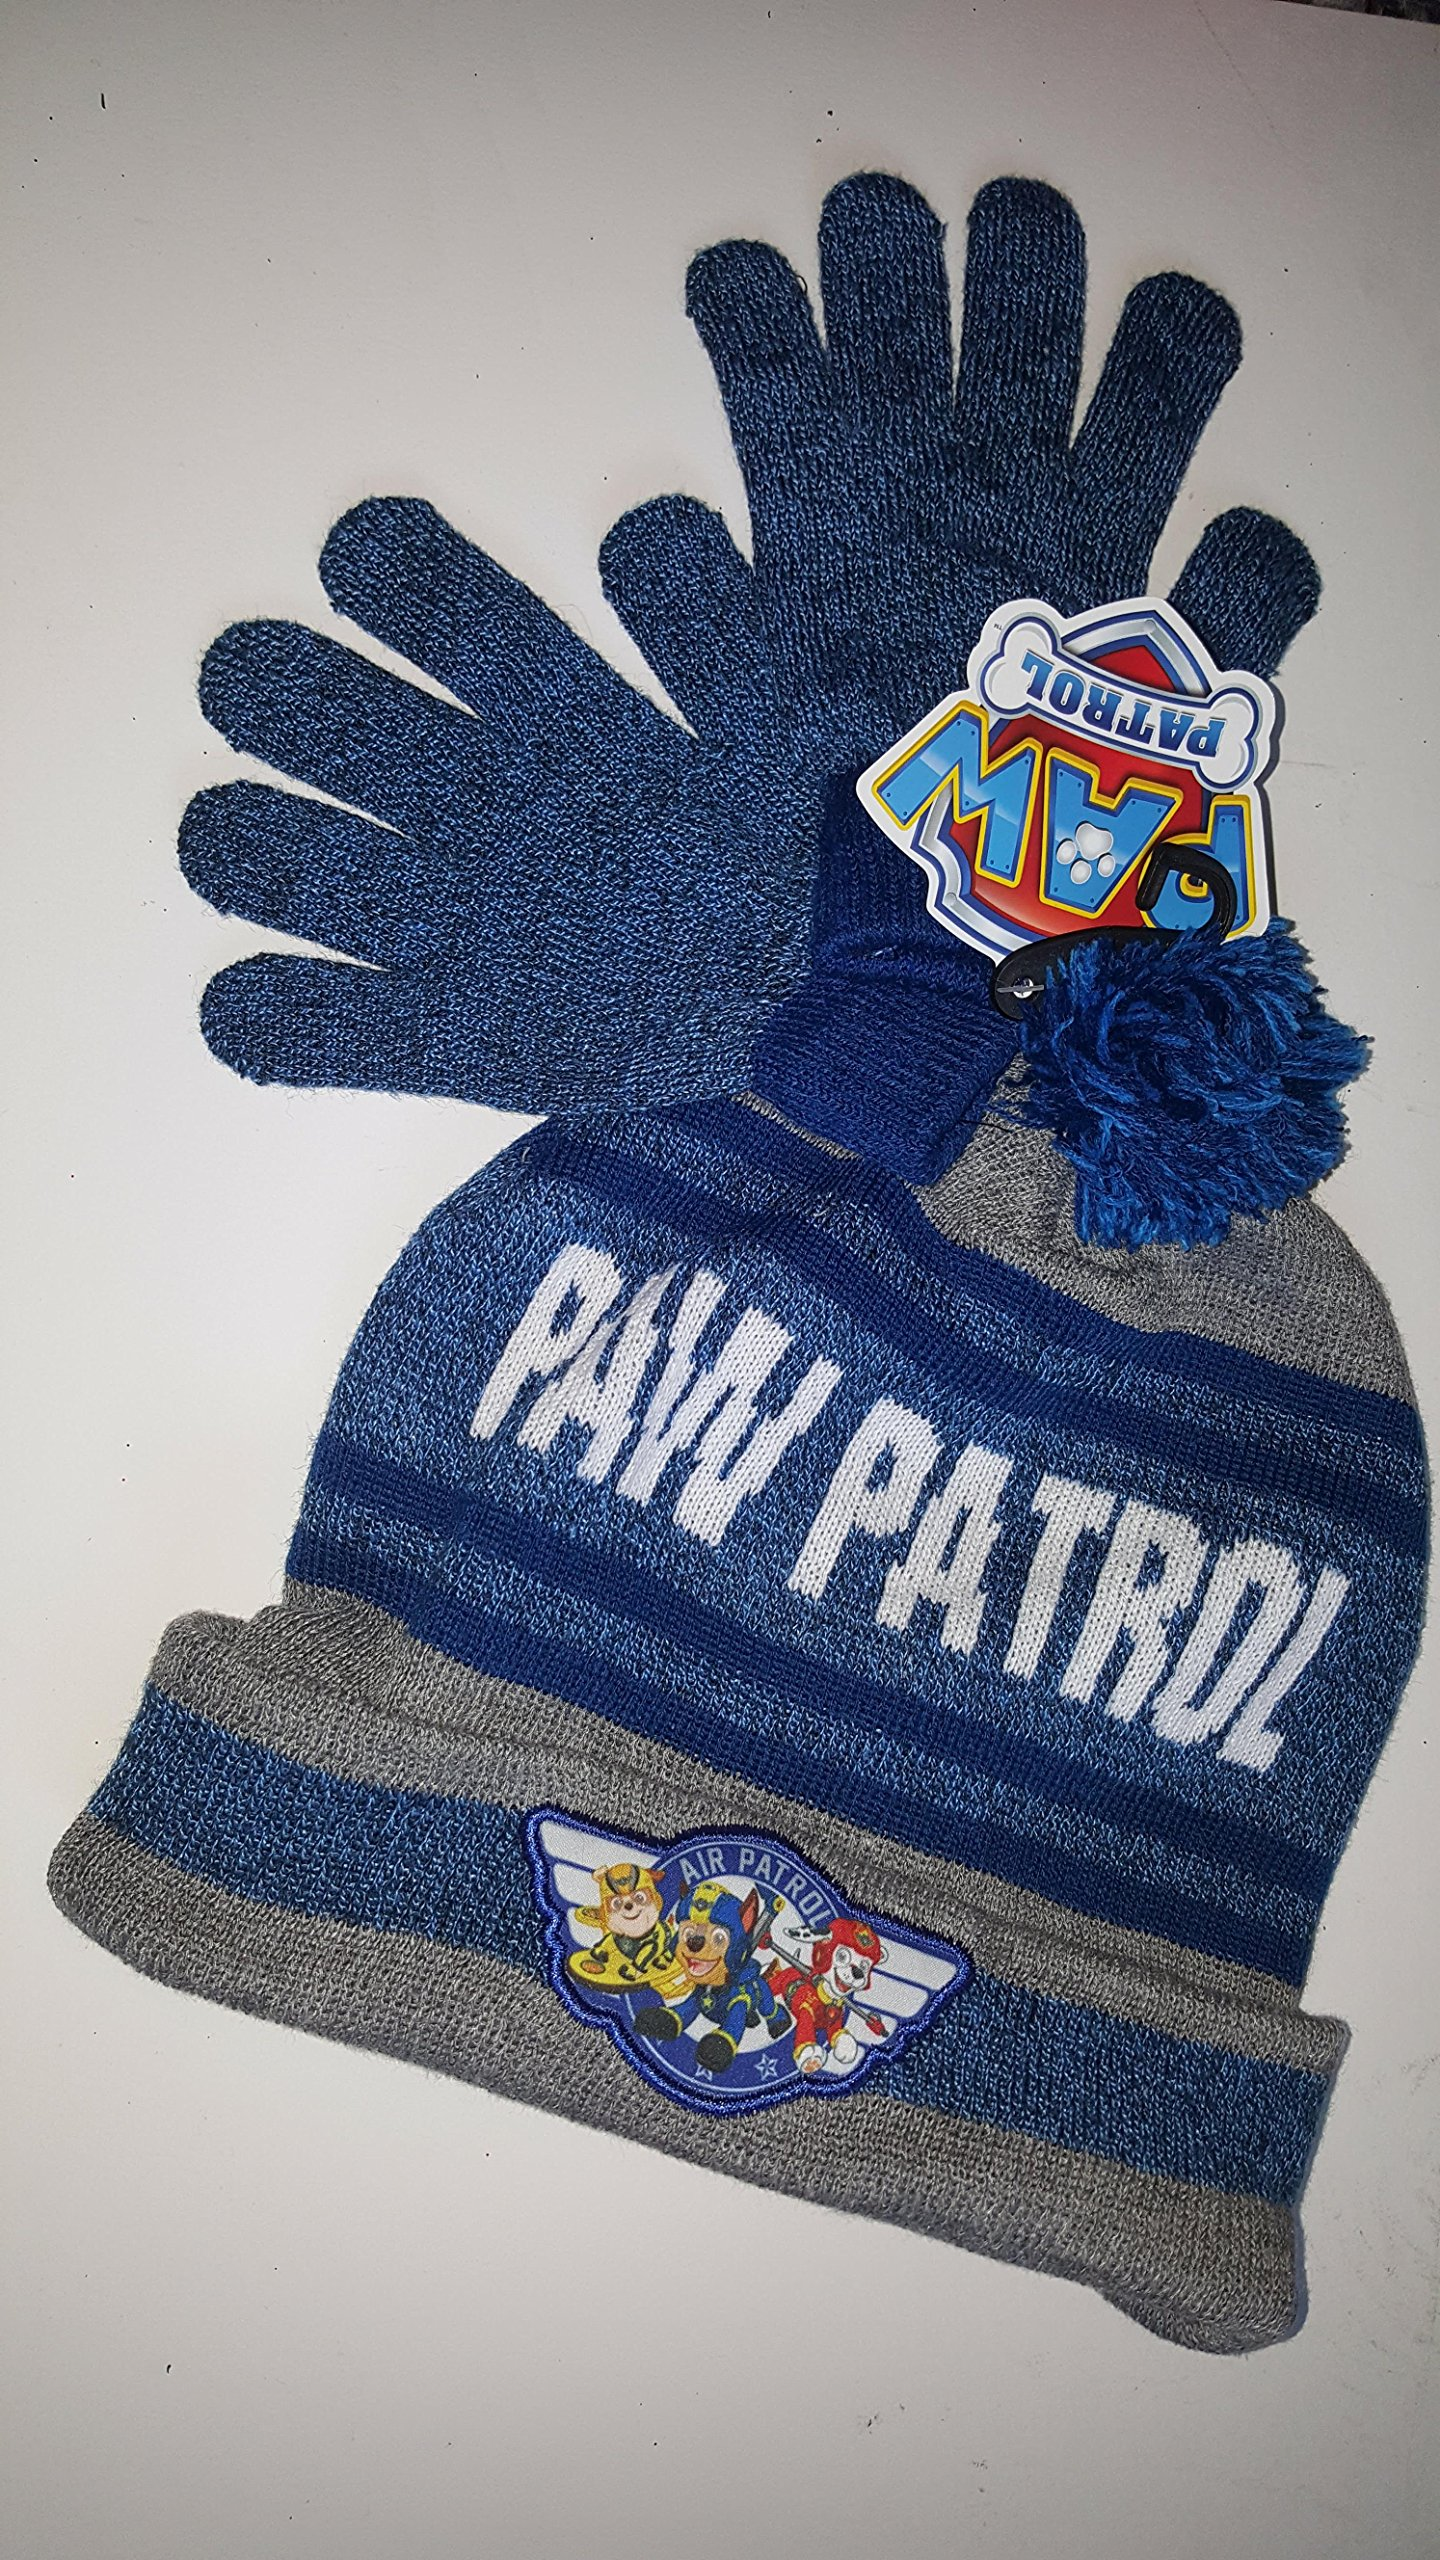 spin Master Paw patrol Paw Patrol Blue and Grey Knit Hat and Gloves With Embroidered Patch On it AndSKI Patrol Knit In it